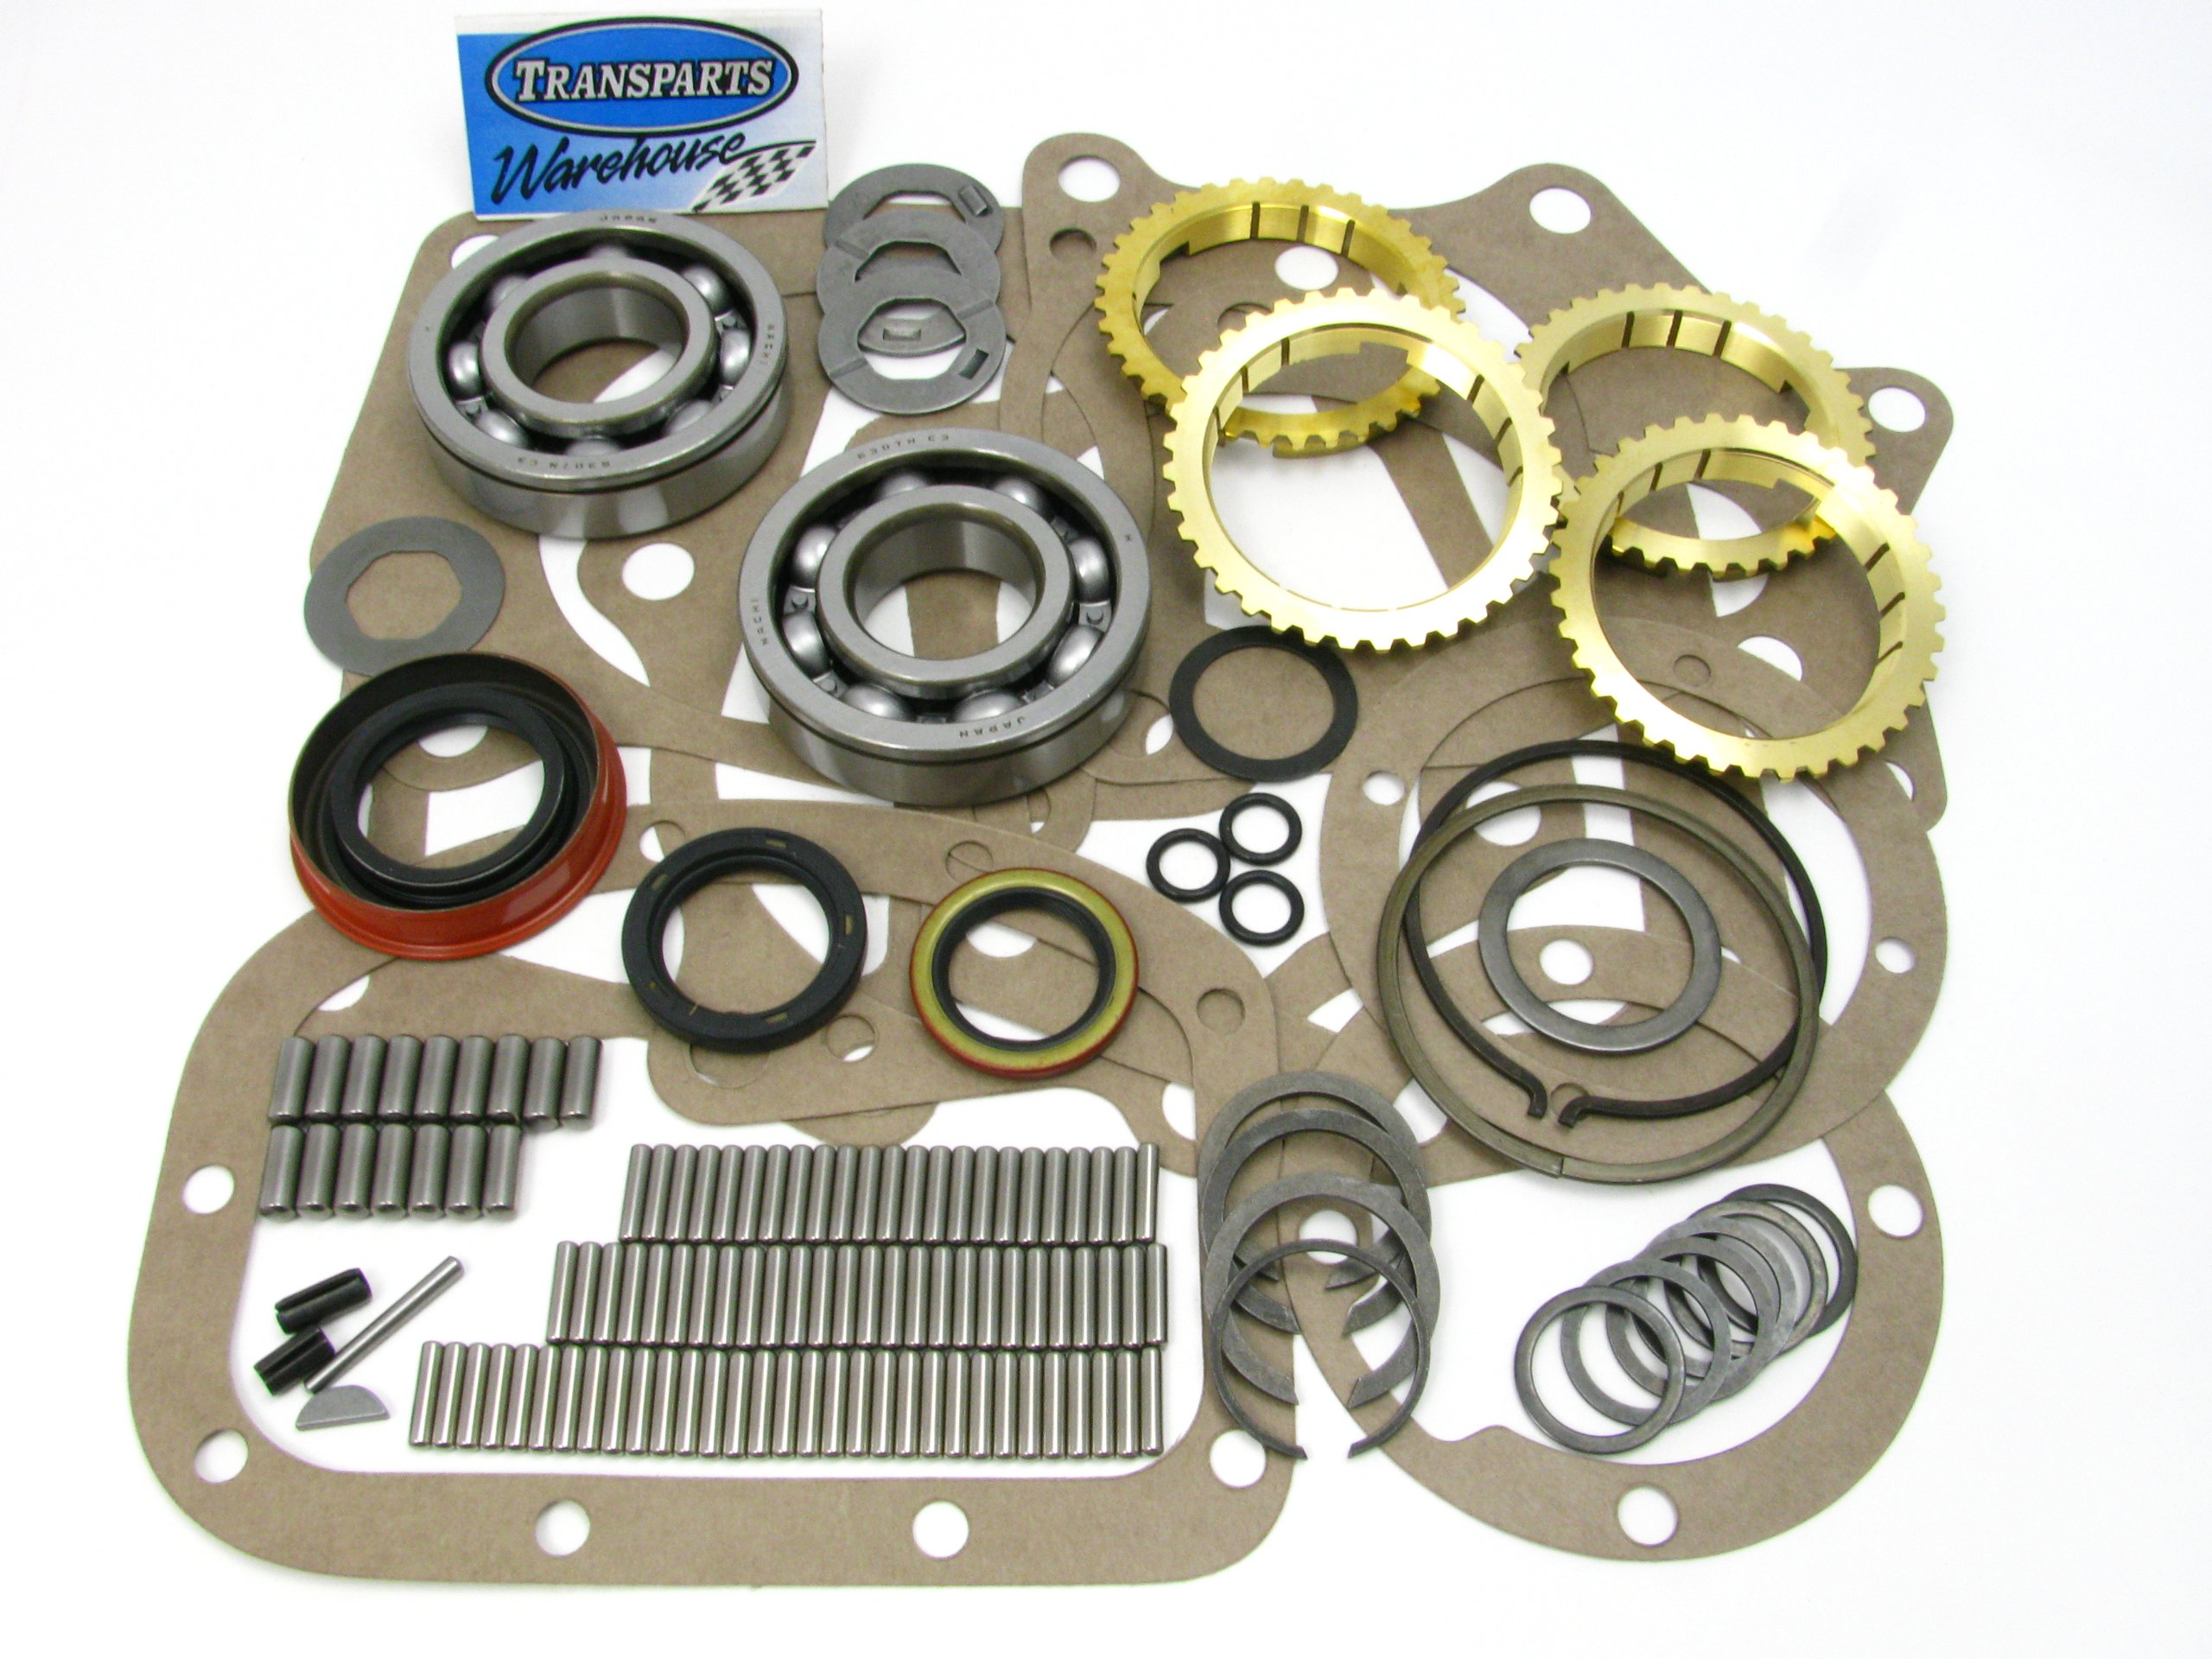 Transparts Warehouse BK177WS GM Chevy Super T10 Transmission Kit with Rings